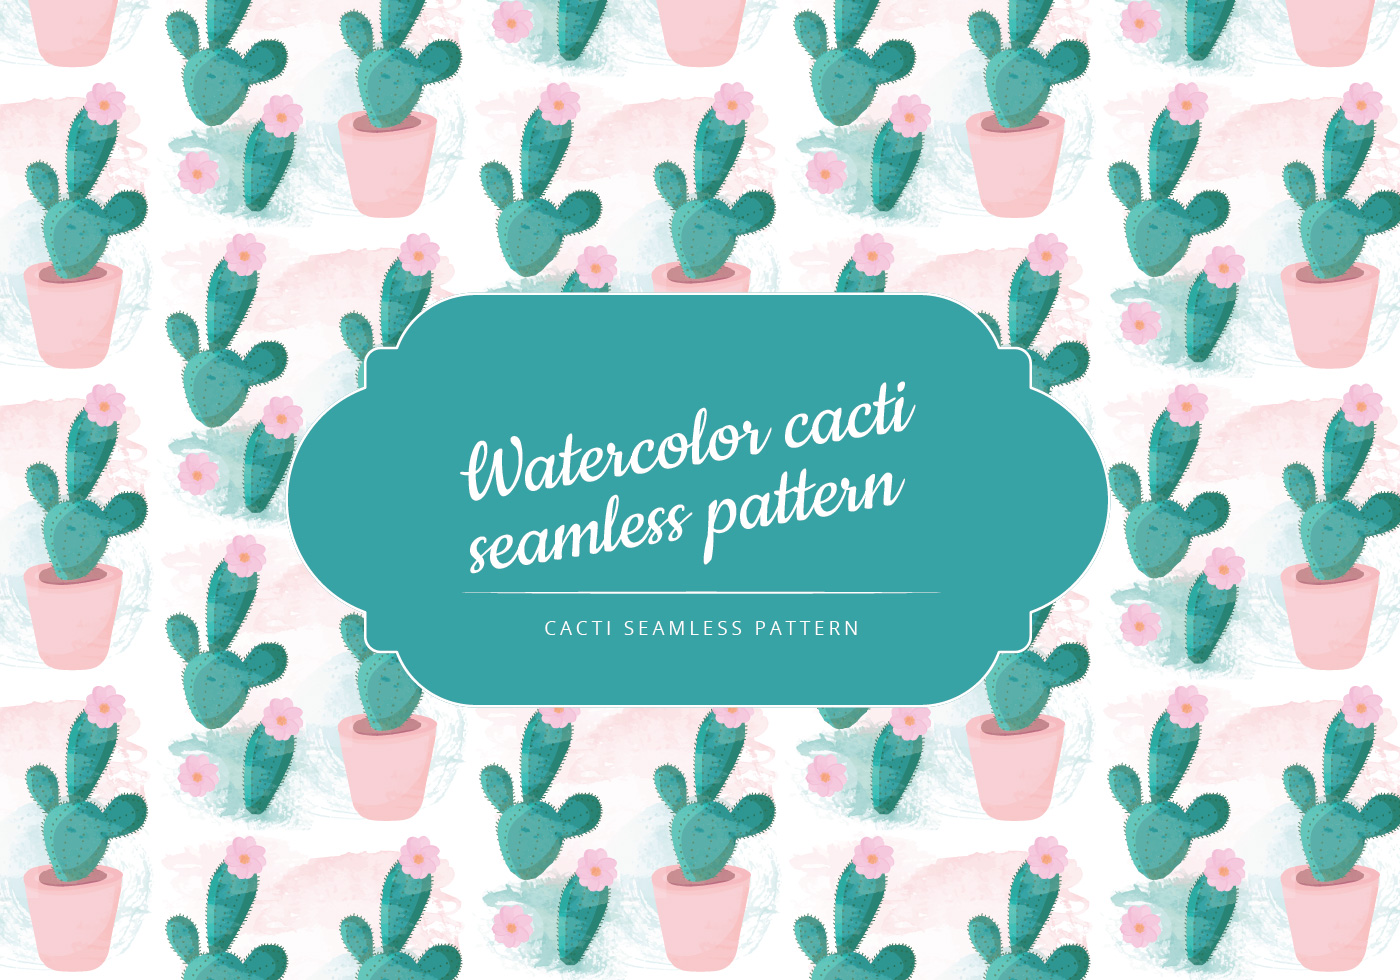 Vector Watercolor Cactus Pattern Telechargez De L39art